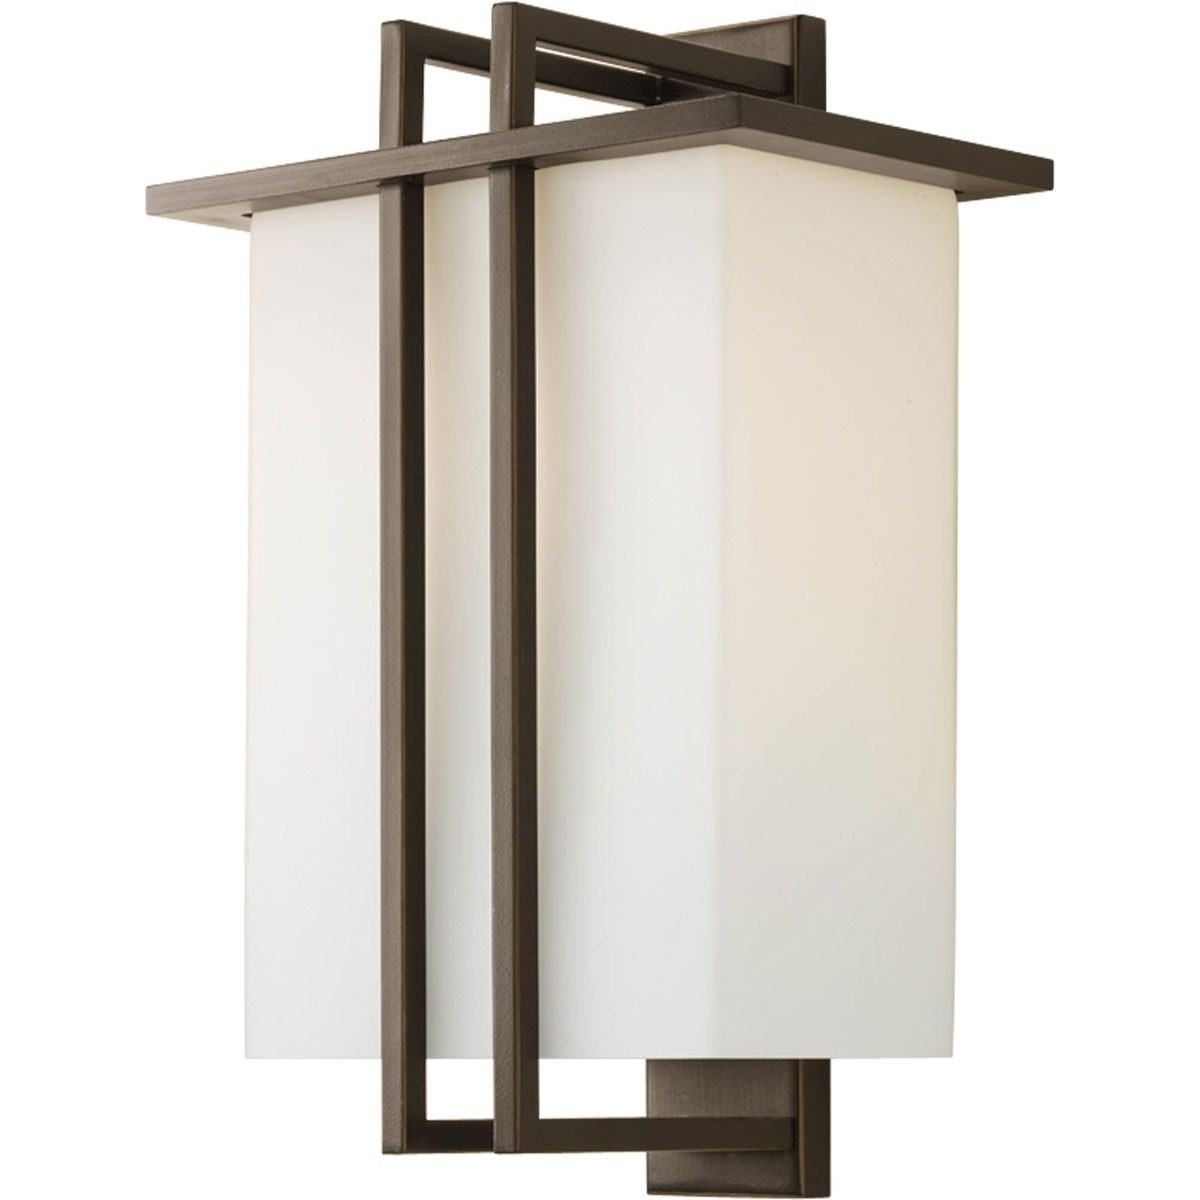 Large Outdoor Wall Lighting Fixtures – Lighting Fixtures Intended For Famous Large Outdoor Wall Lanterns (View 3 of 20)